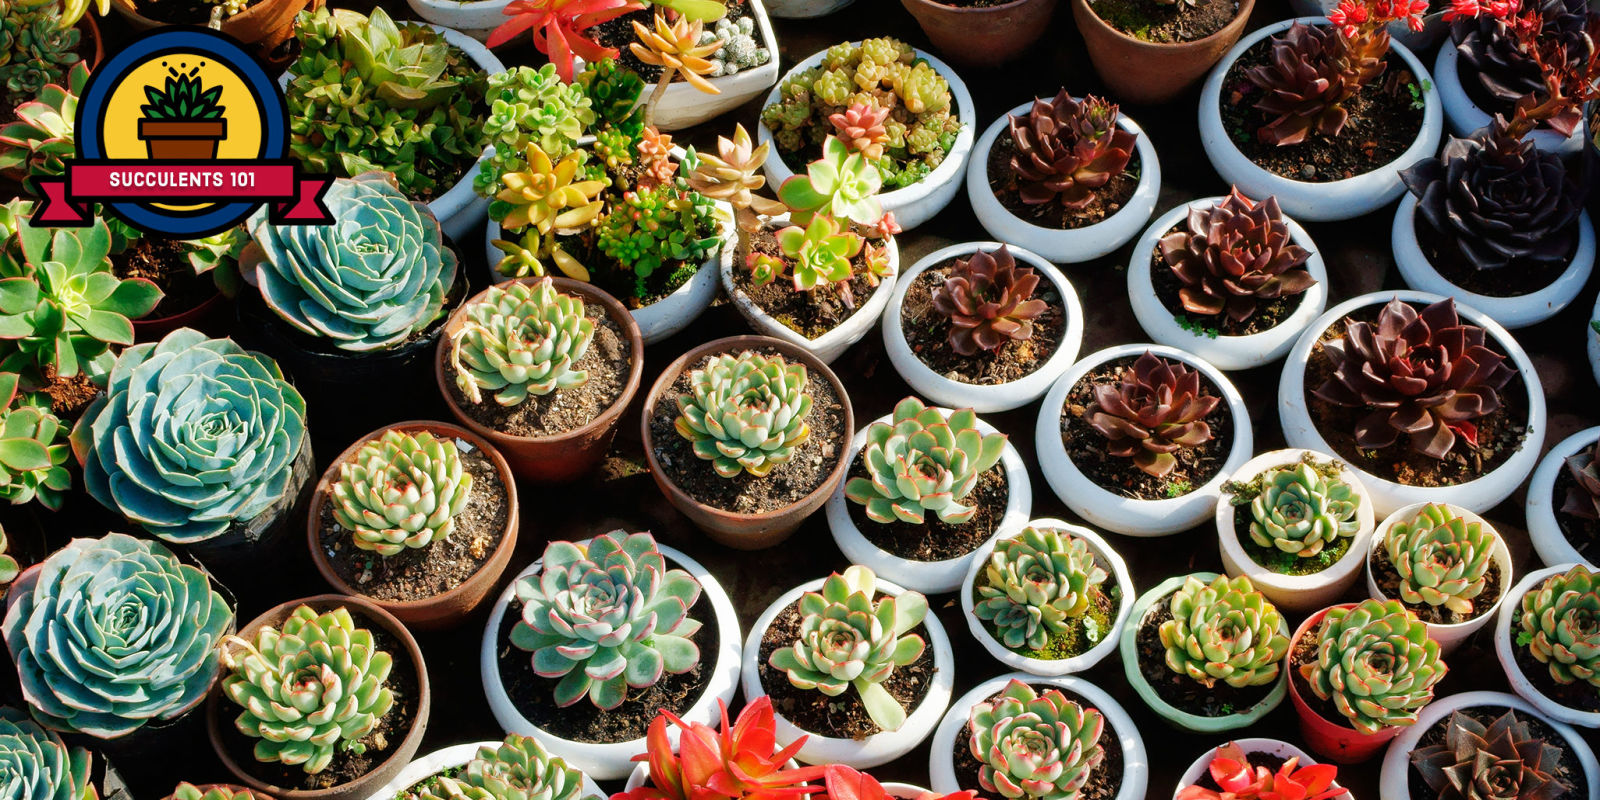 25 succulent plant types different kinds of succulents list for Different types of succulent plants